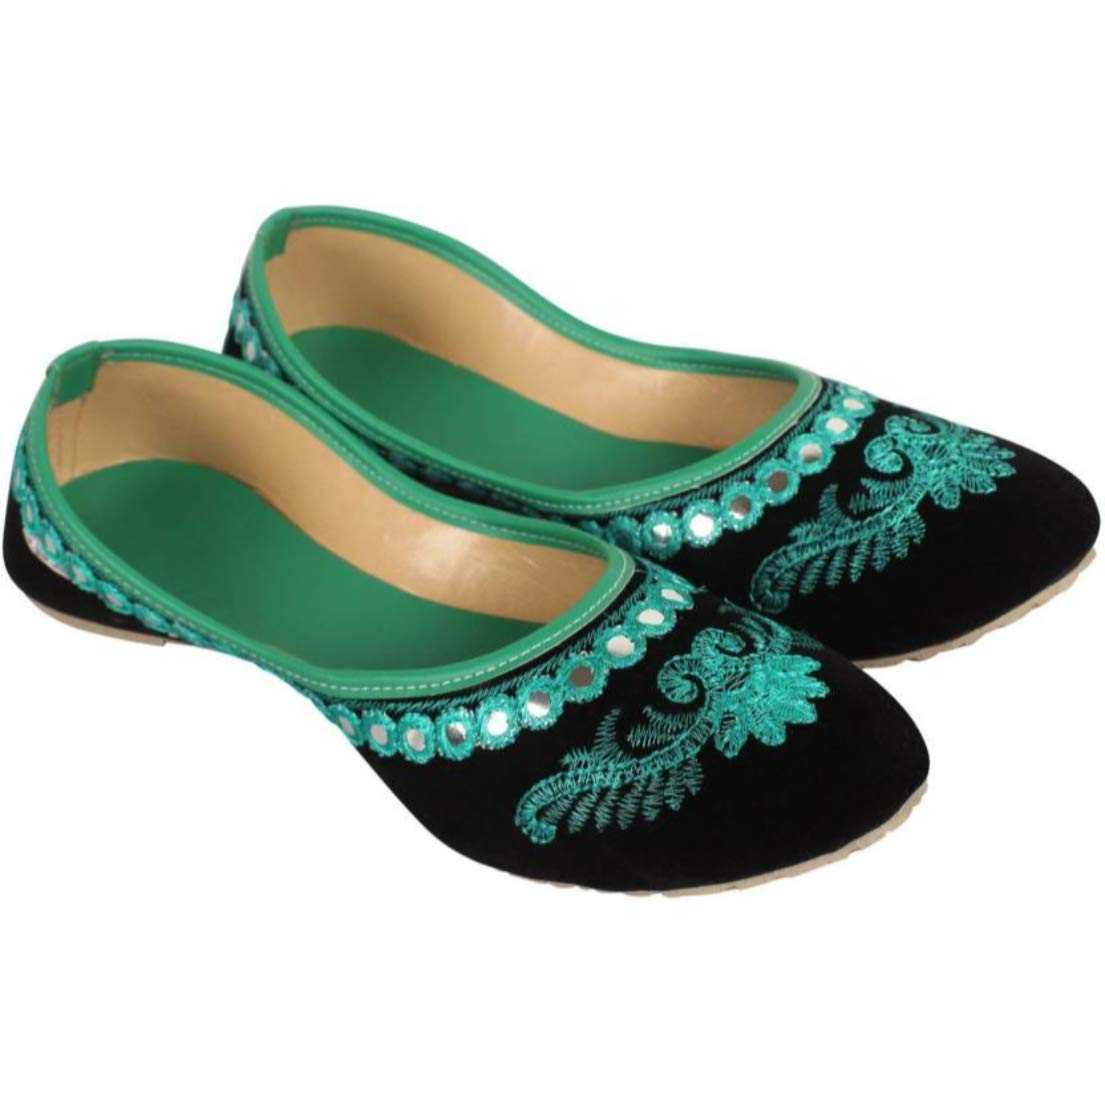 Rajwari Womens Green Color Designer Handmade Indian Fabric Traditional Shoes Purely Handcrafted Ethnic